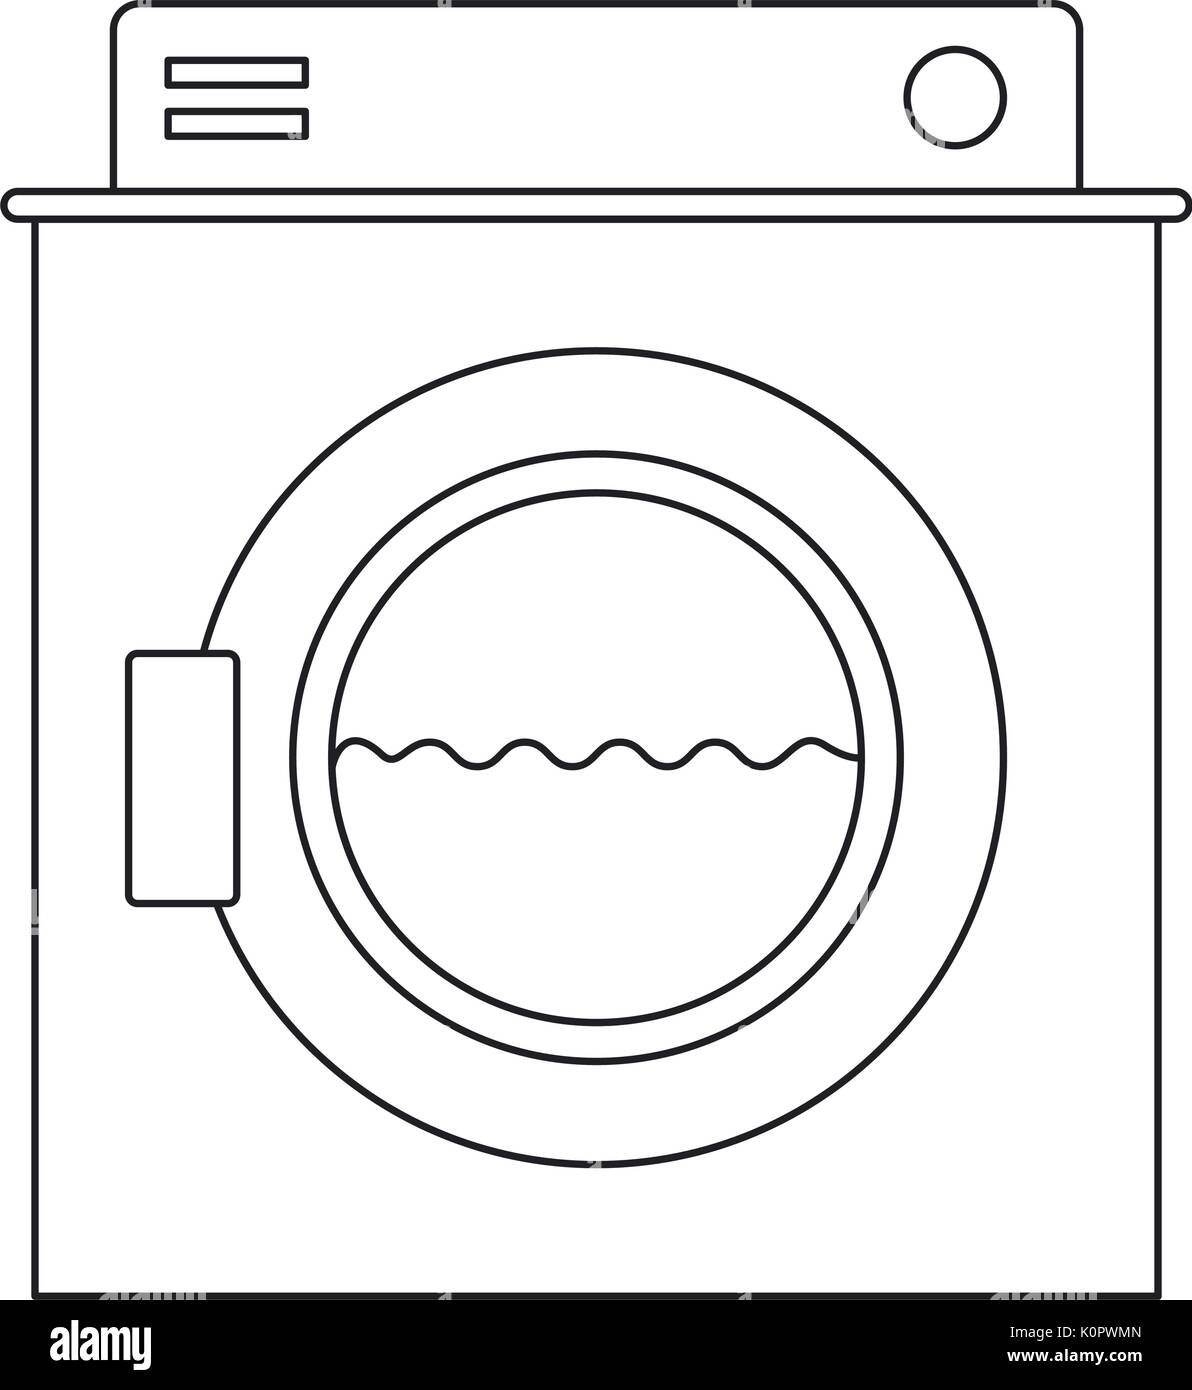 hight resolution of monochrome silhouette of washing machine with water medium level